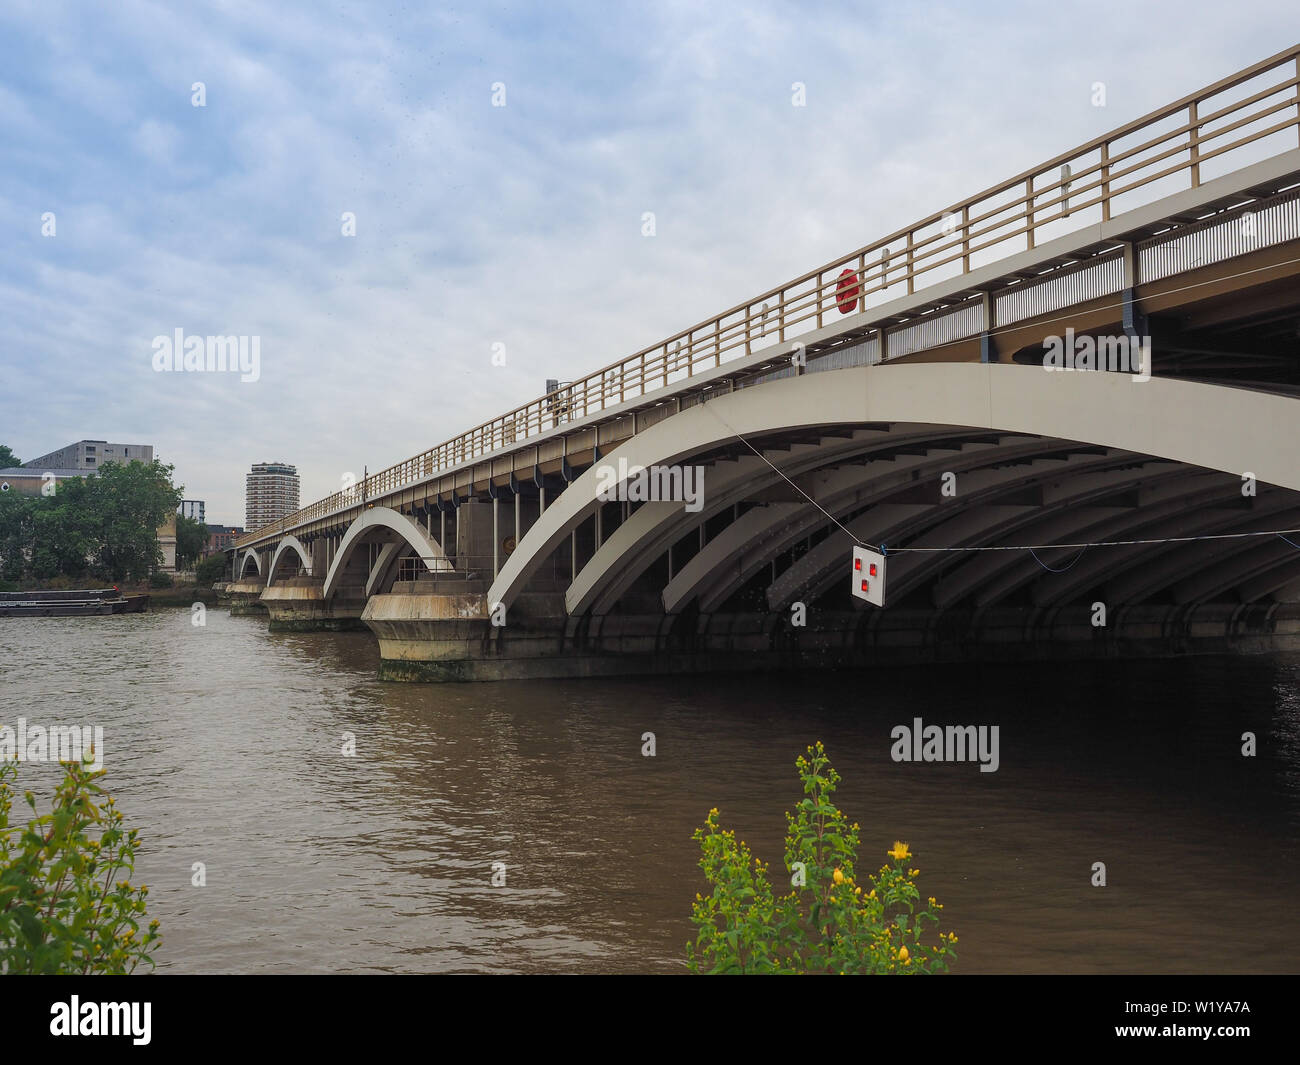 Panoramic view of River Thames in Chelsea, London, UK - Stock Image